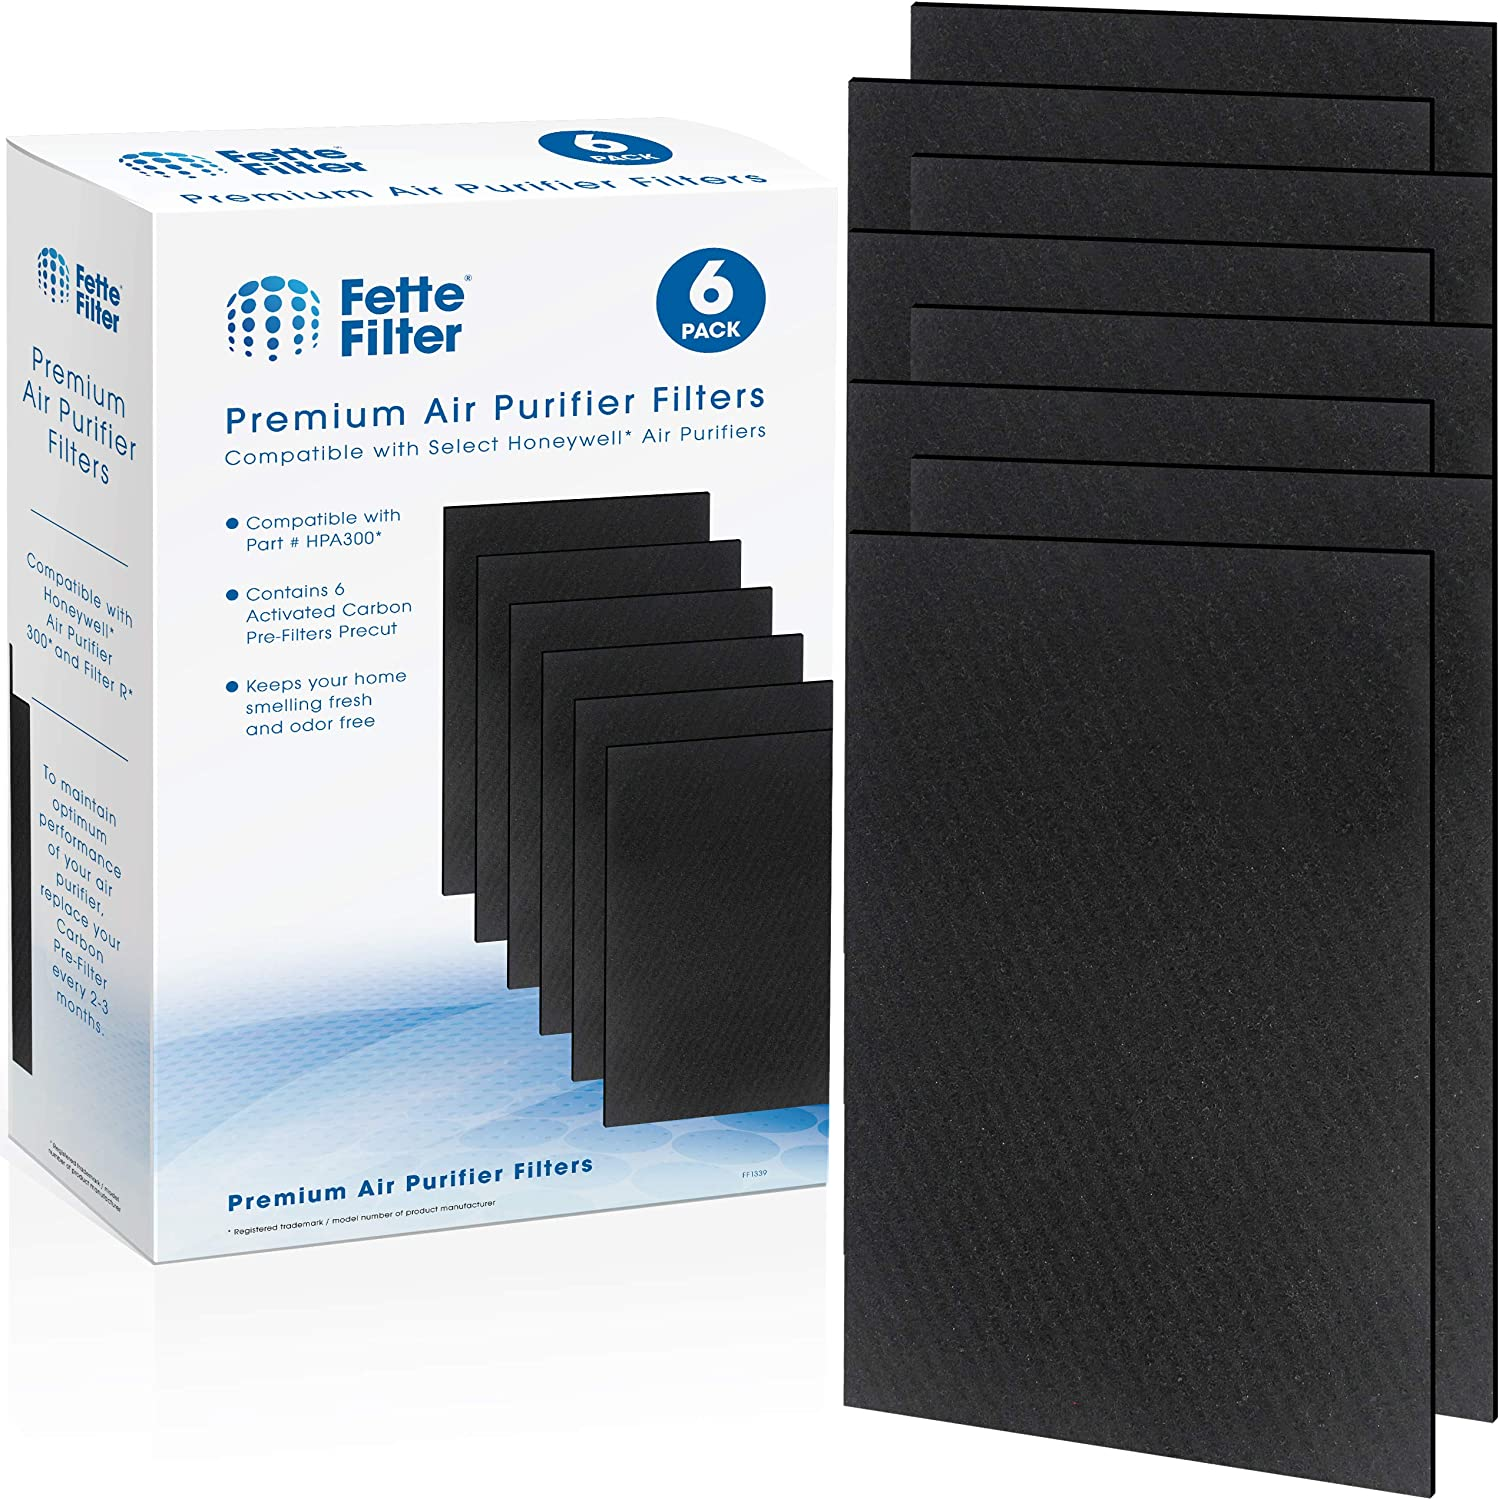 Fette Filter Replacement Filter Pack Including Pre-Cut Activated Carbon Pre-Filters for HPA300 Compatible with Honeywell Air Purifier 300 and Filter R (6 Carbon Filters)